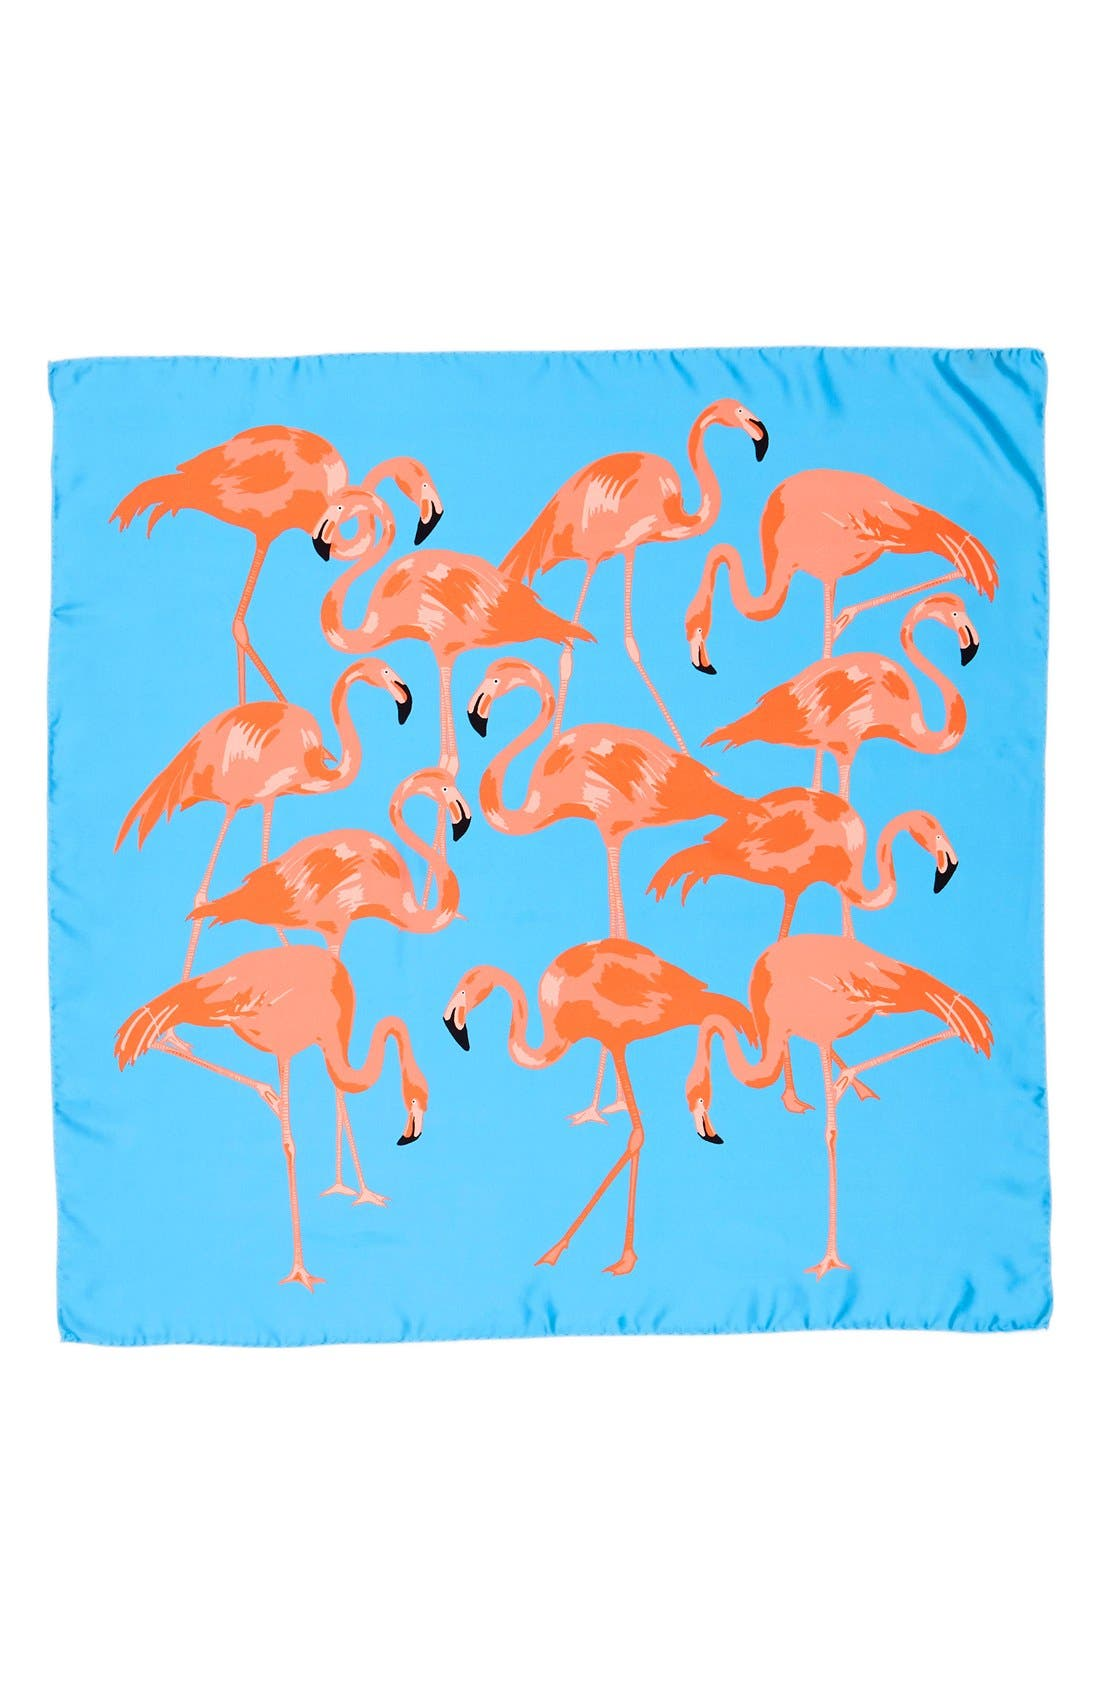 'Flamingo Flock' Silk Scarf,                             Alternate thumbnail 2, color,                             Pale Blue